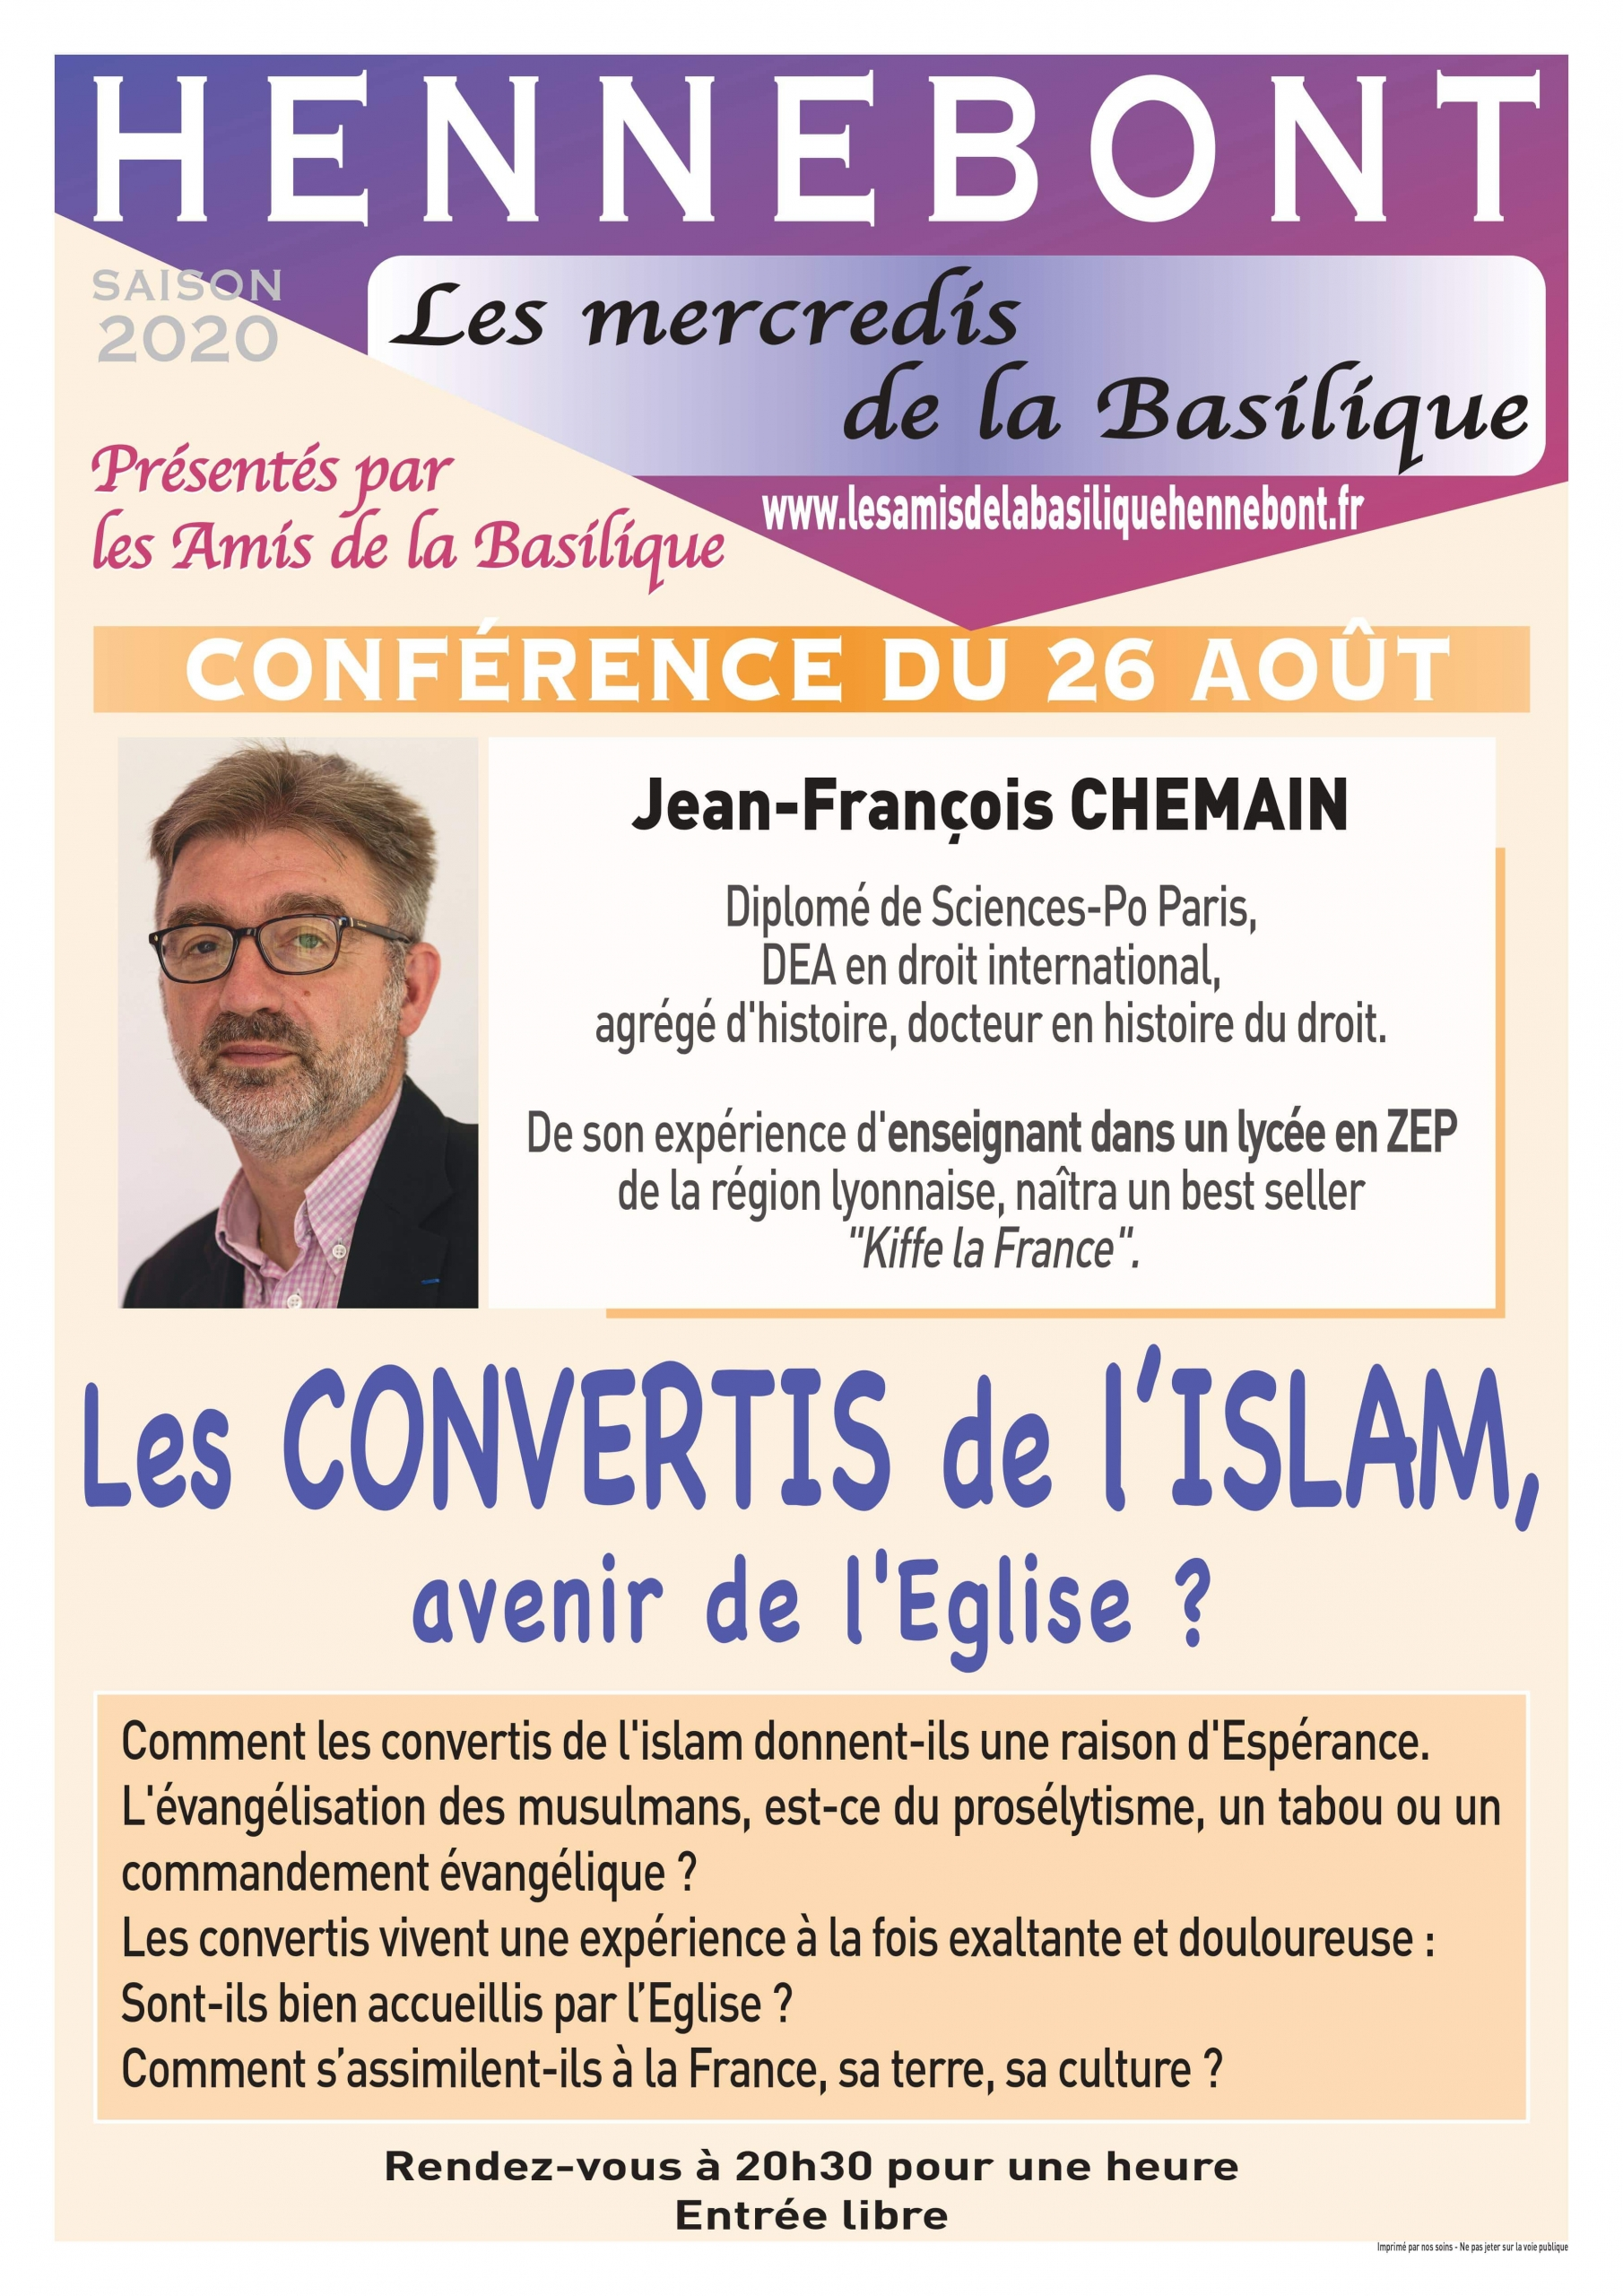 mercredis_de_la_basilique_conference_Jean_Fraancois_chemain